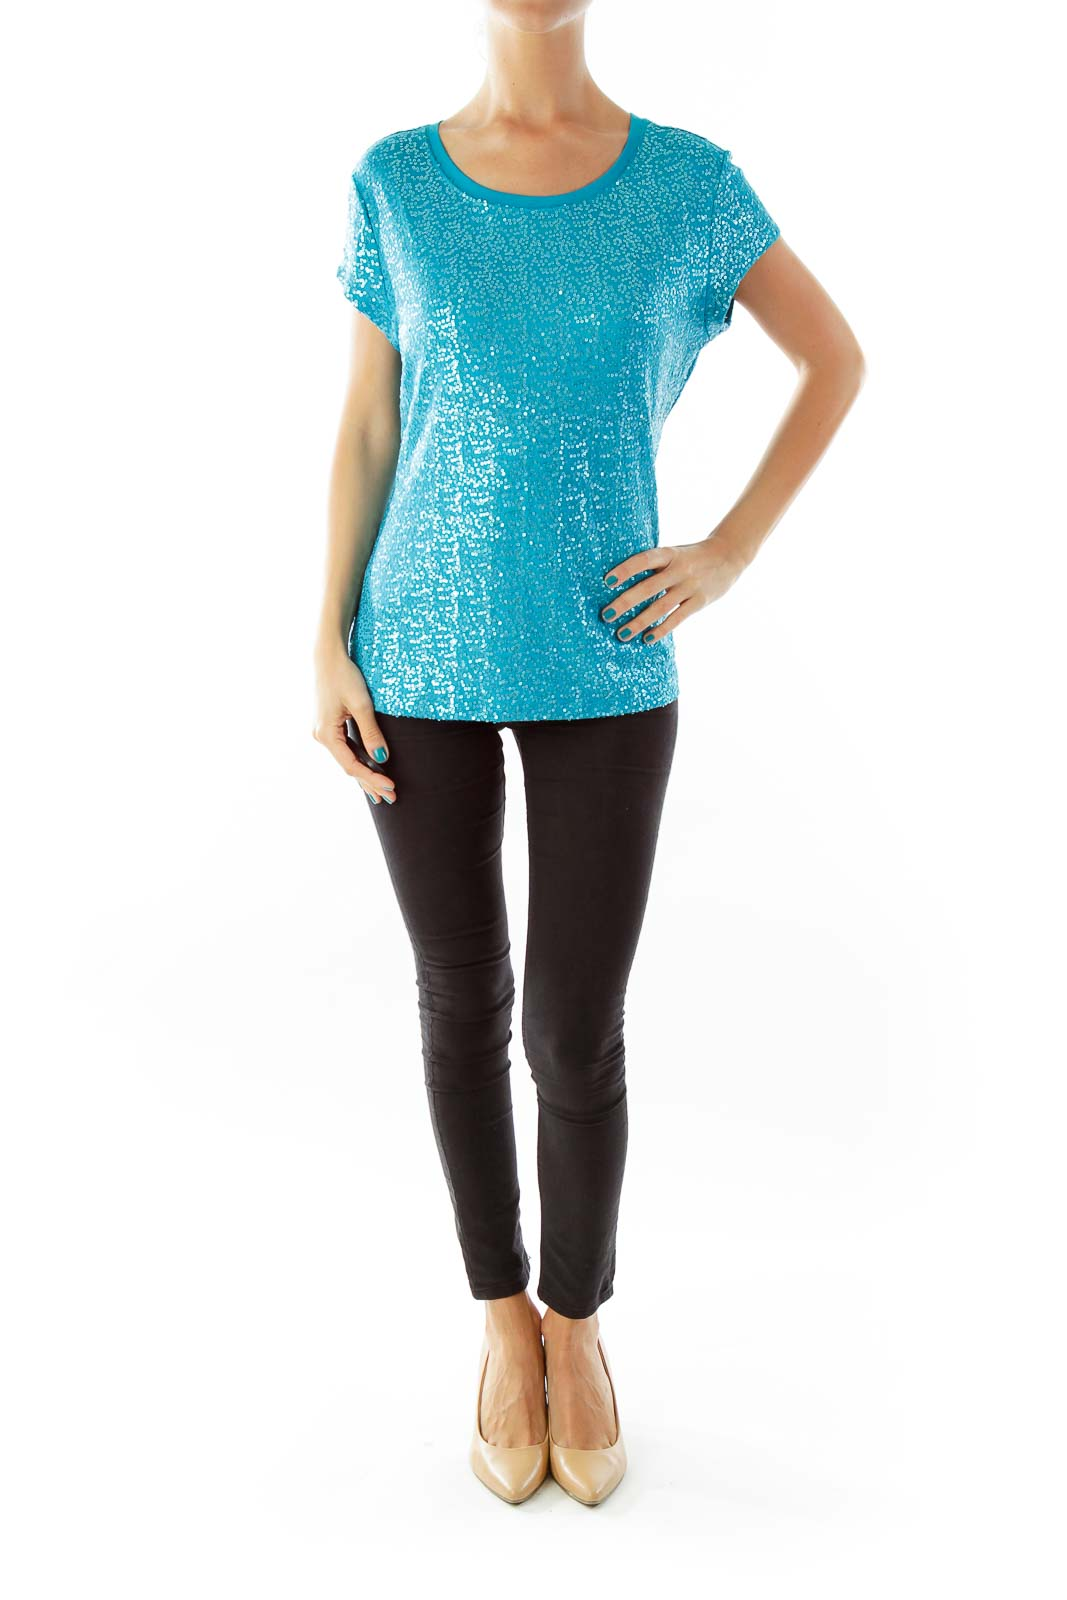 Turquoise Sequined T-Shirt